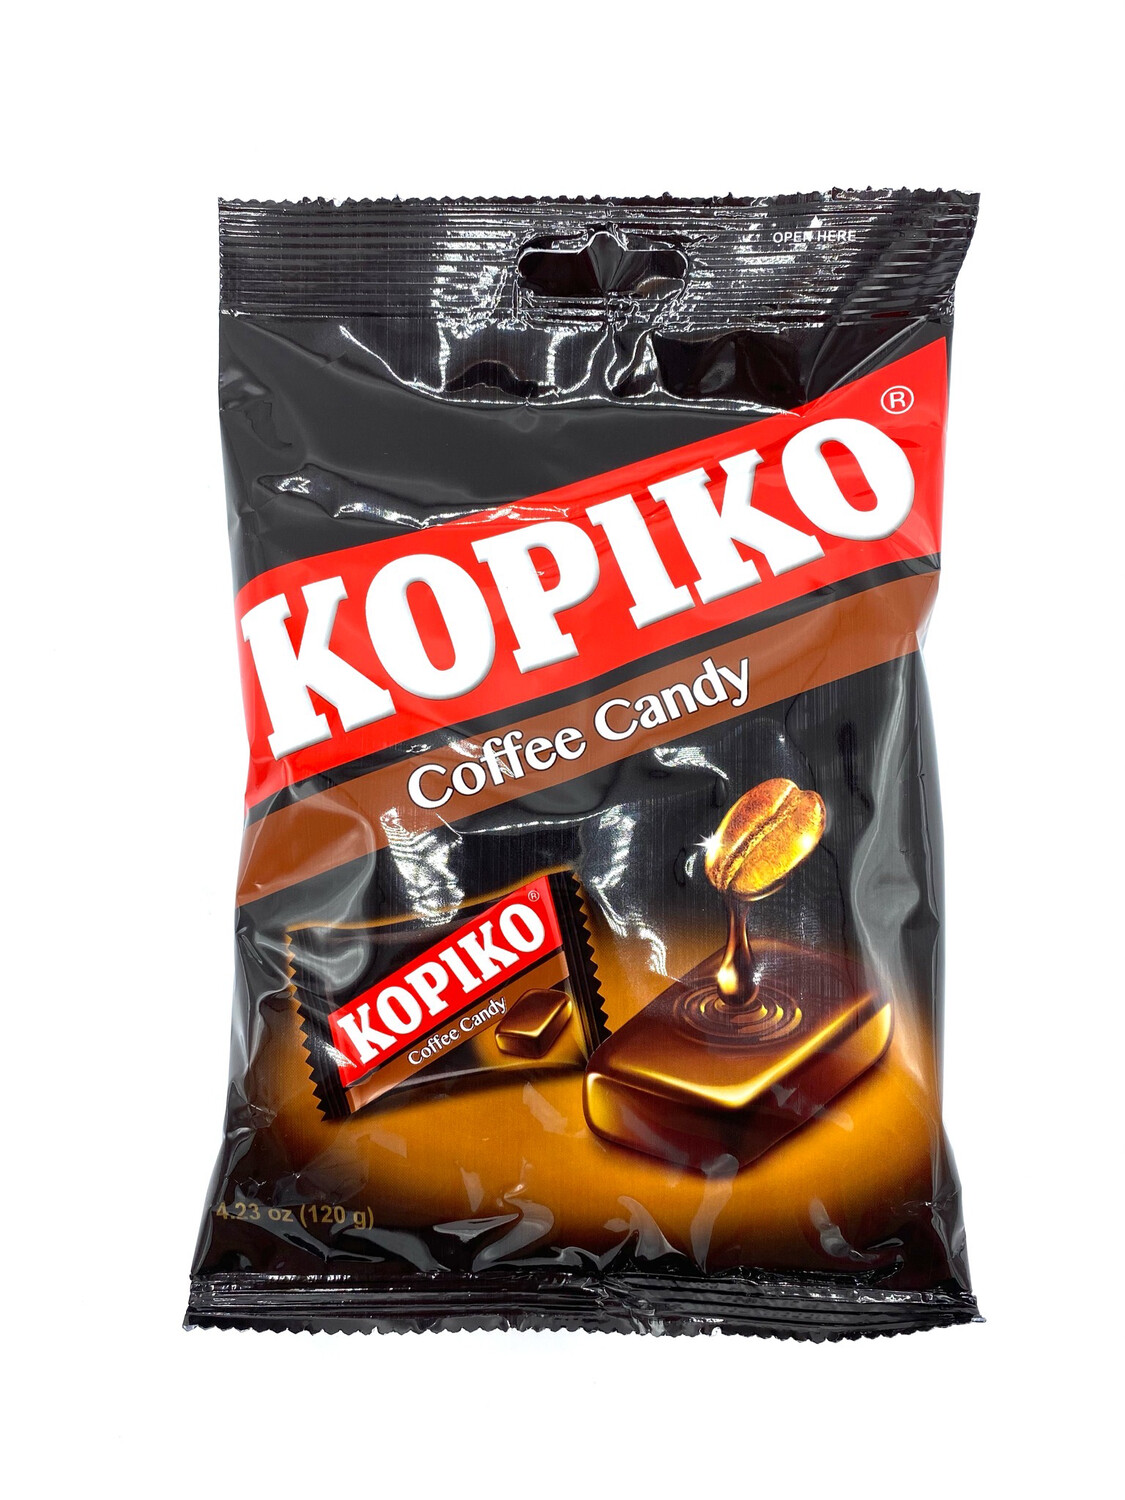 Kopiko Coffee Candy 4.23 oz